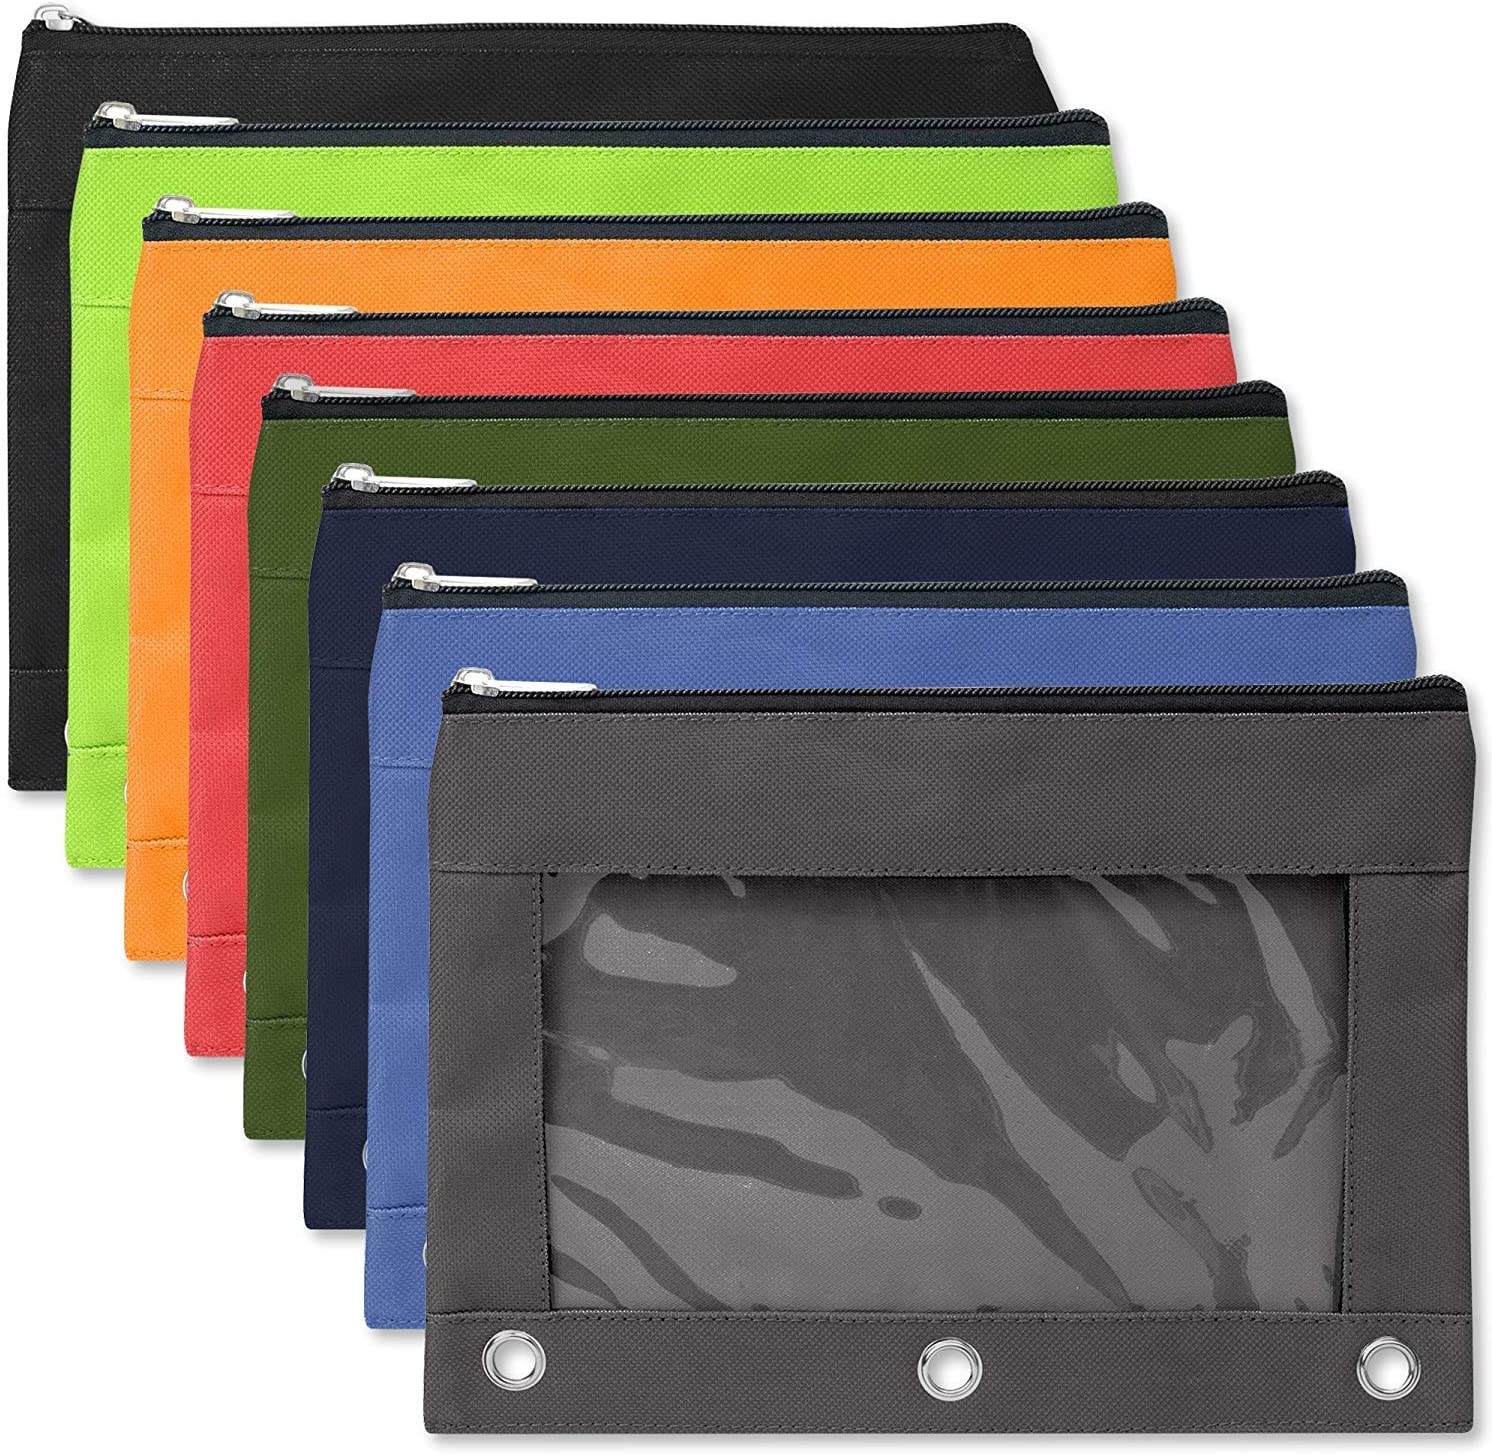 """24 Pack of 3 Ring Pencil Pouch with Clear""""See Through"""" Window - 24 Bulk Pack Bundle (Color Pack 1)"""